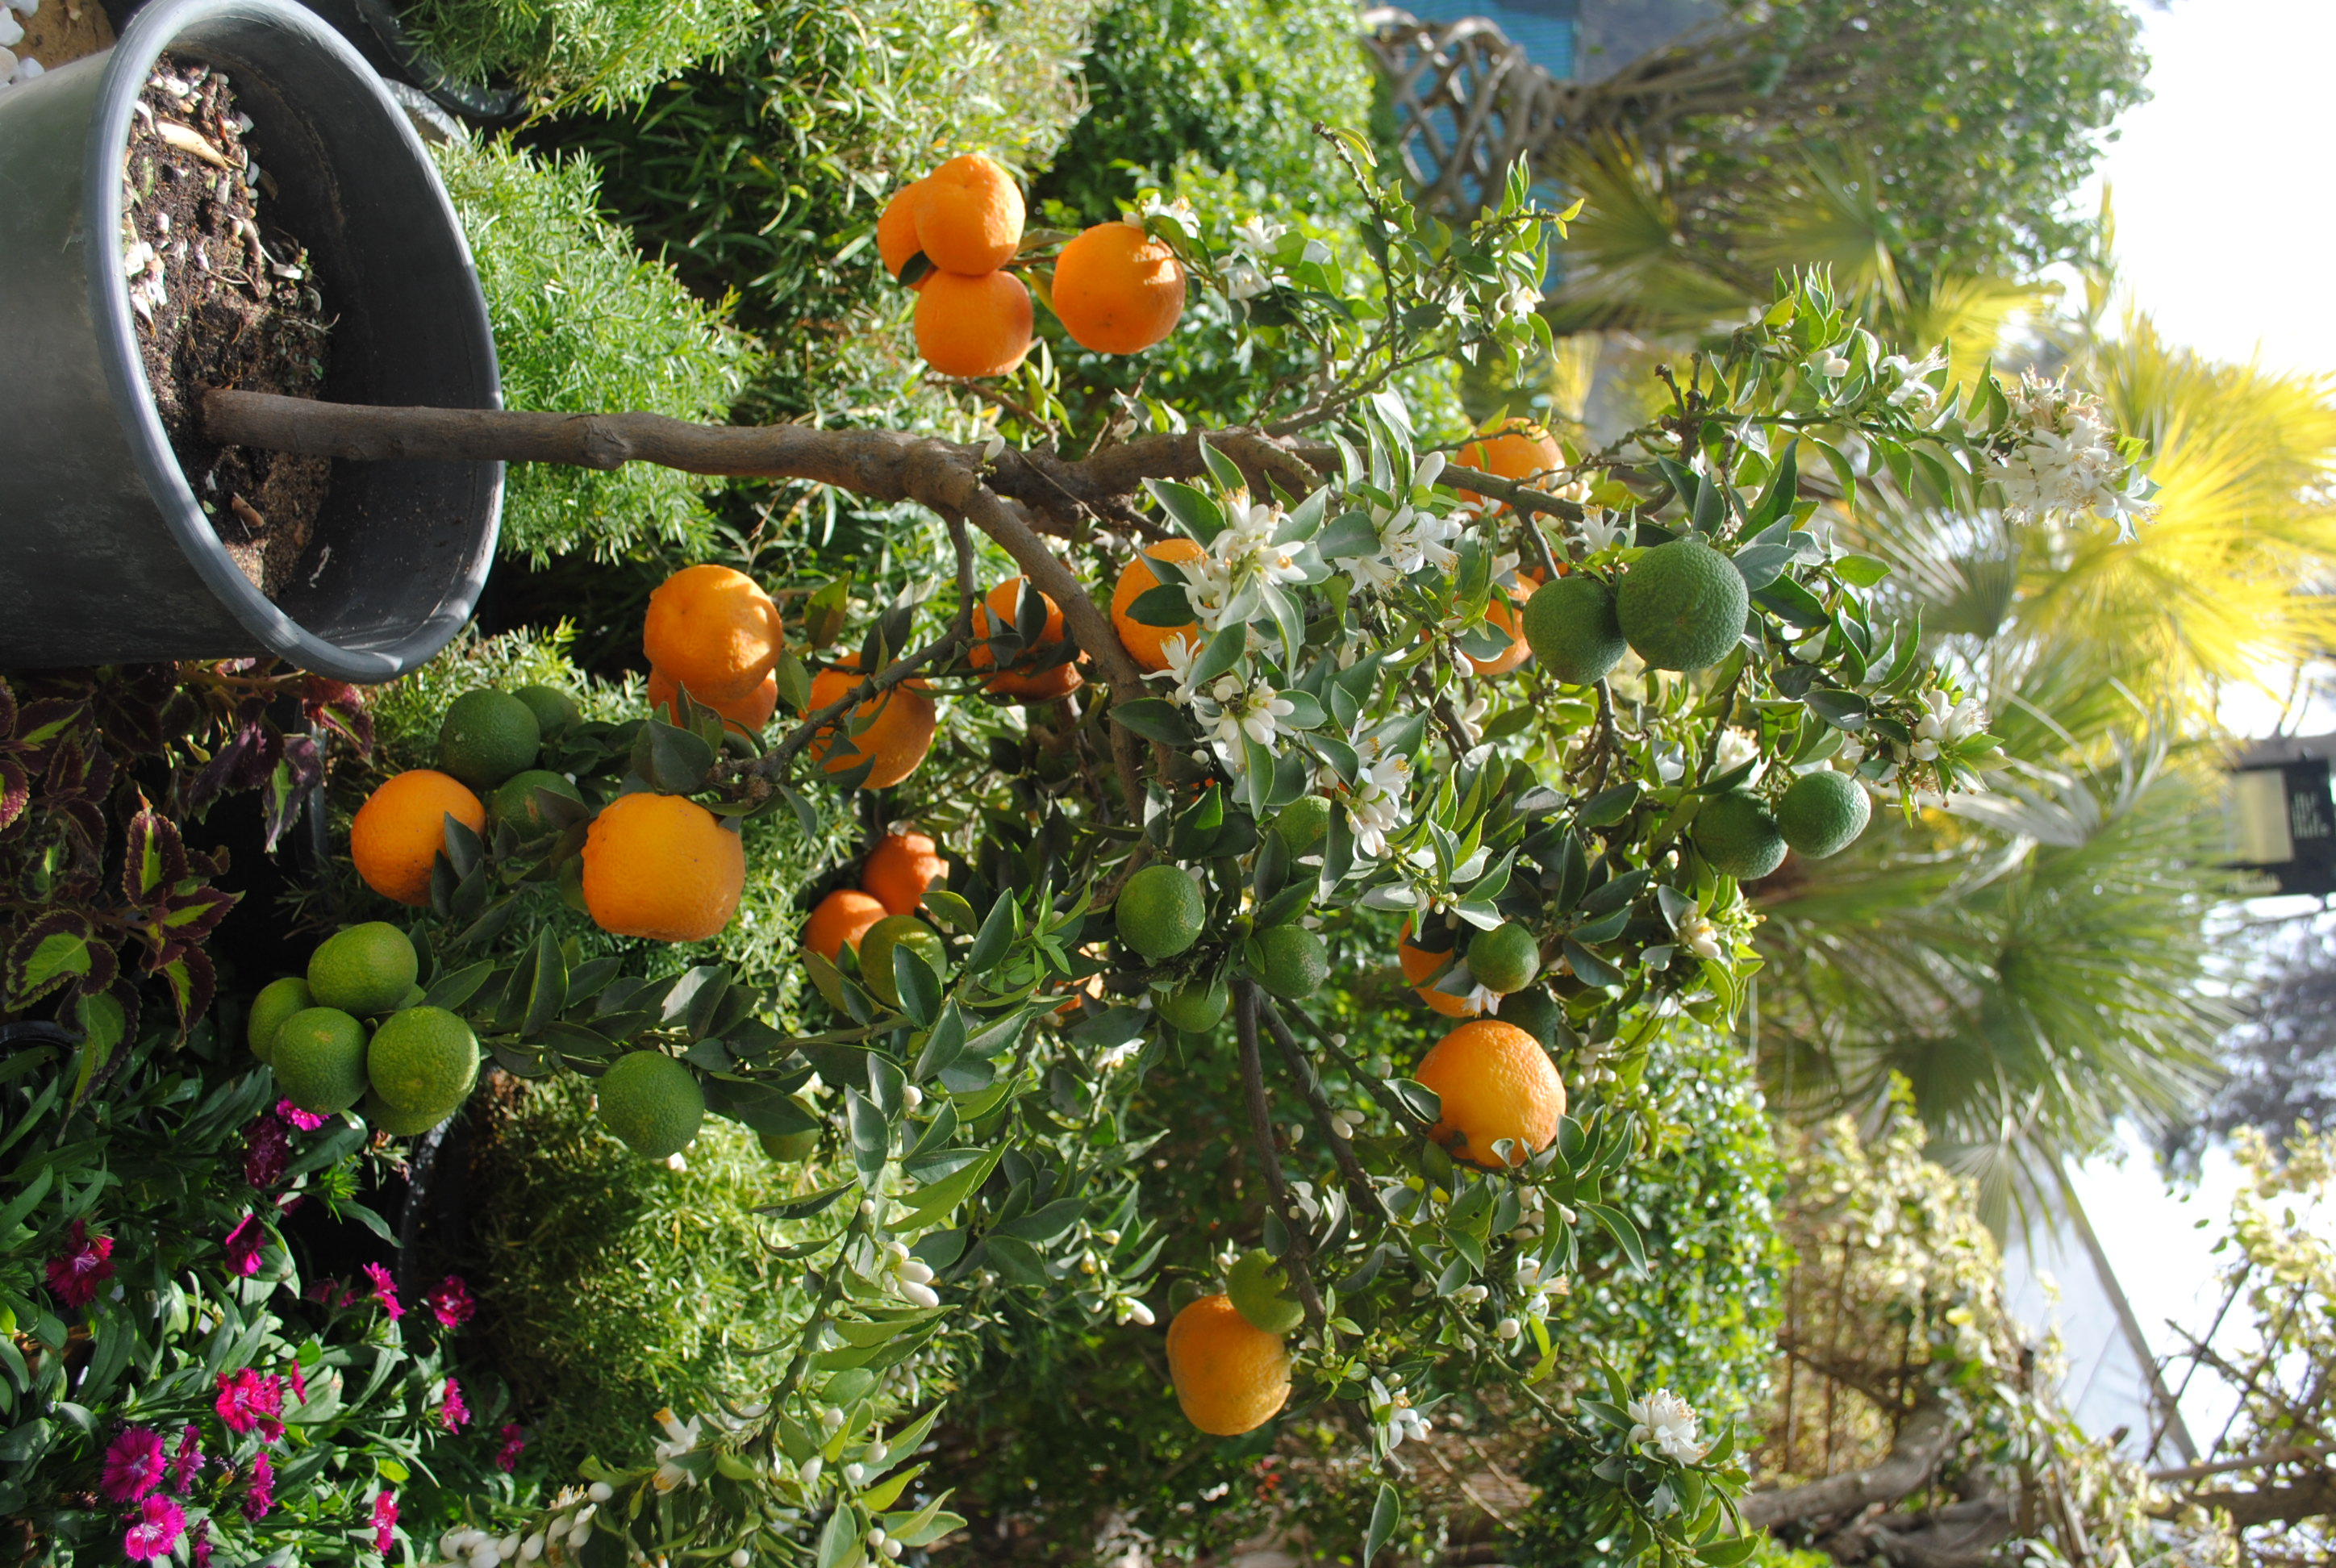 A new hybrid orange tree that can be grown in a pot and offers oranges eight months a year (Photo by Abdel-Rahman Sherief)